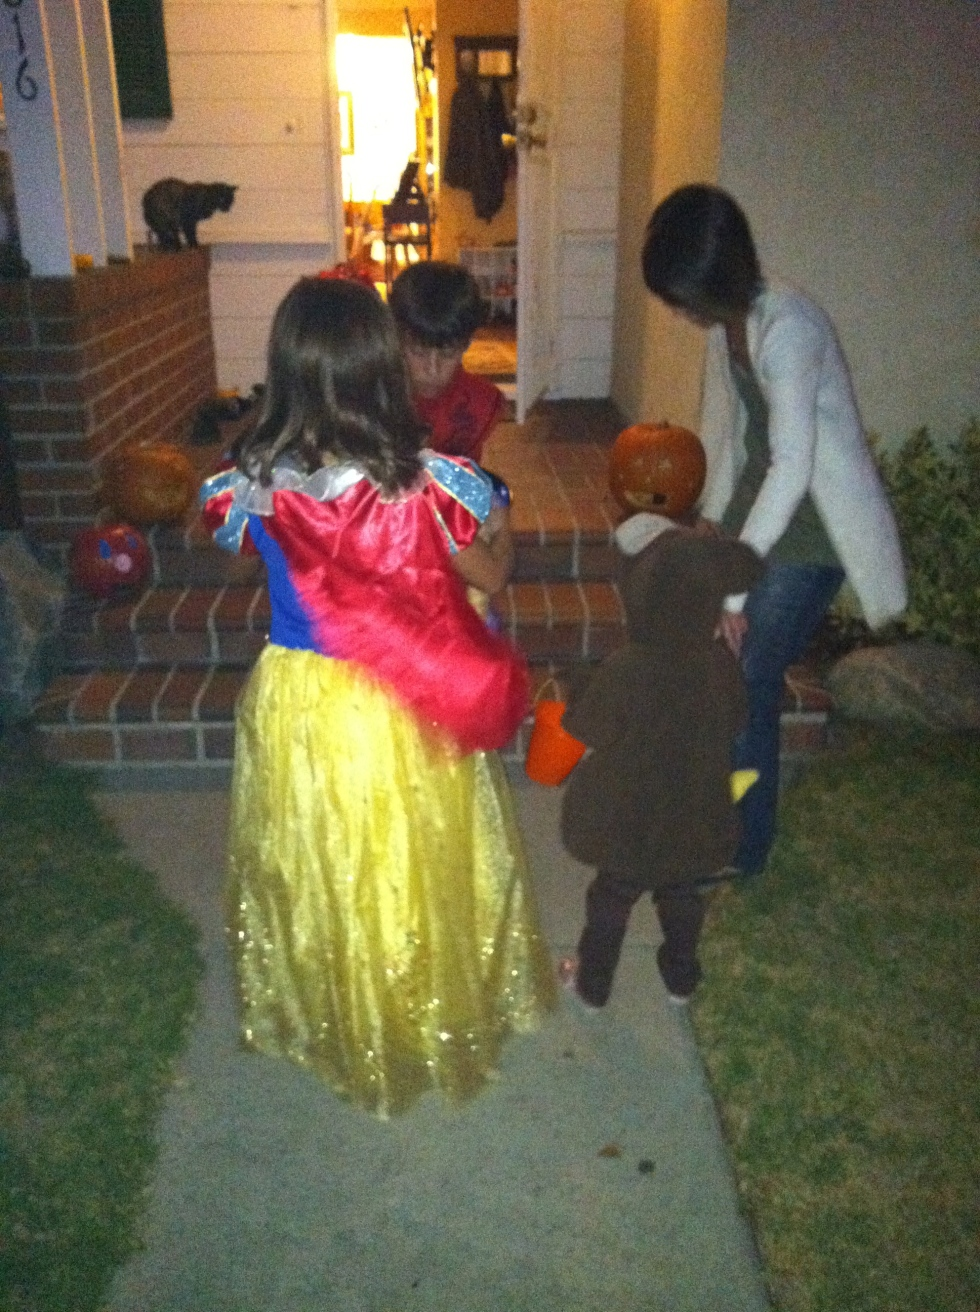 Trick or treating - part of the Christian tradition